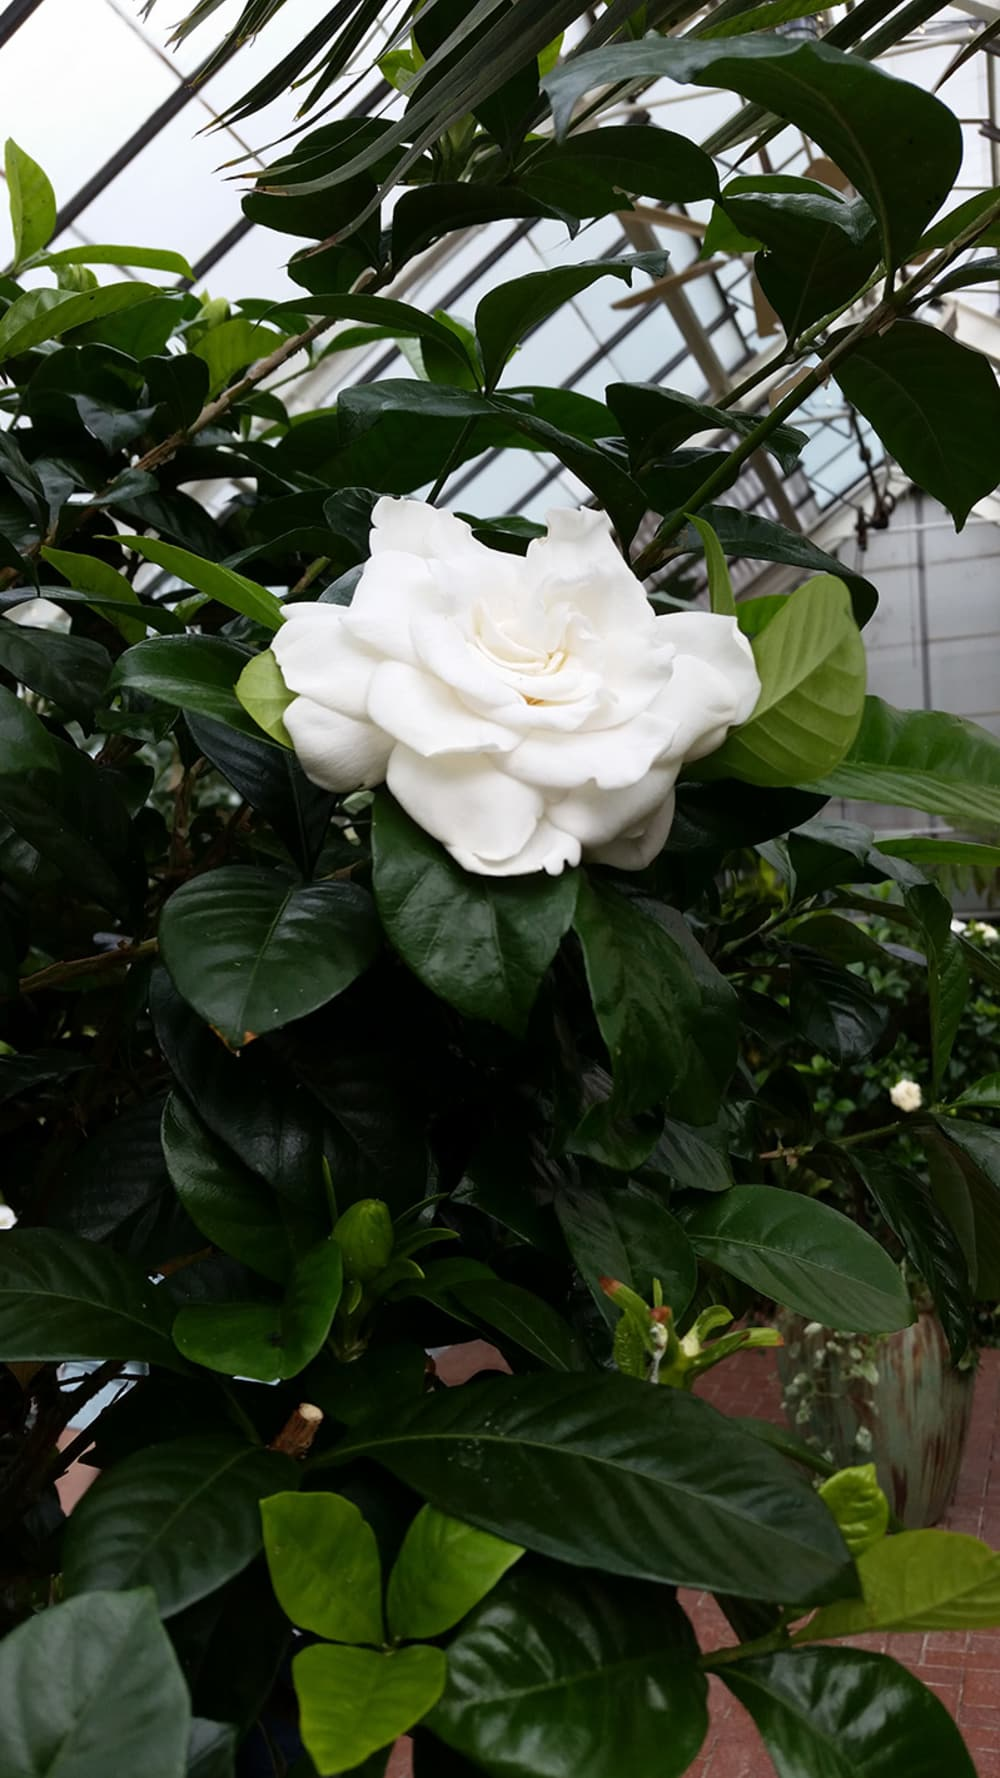 Gardenia at the Conservatory